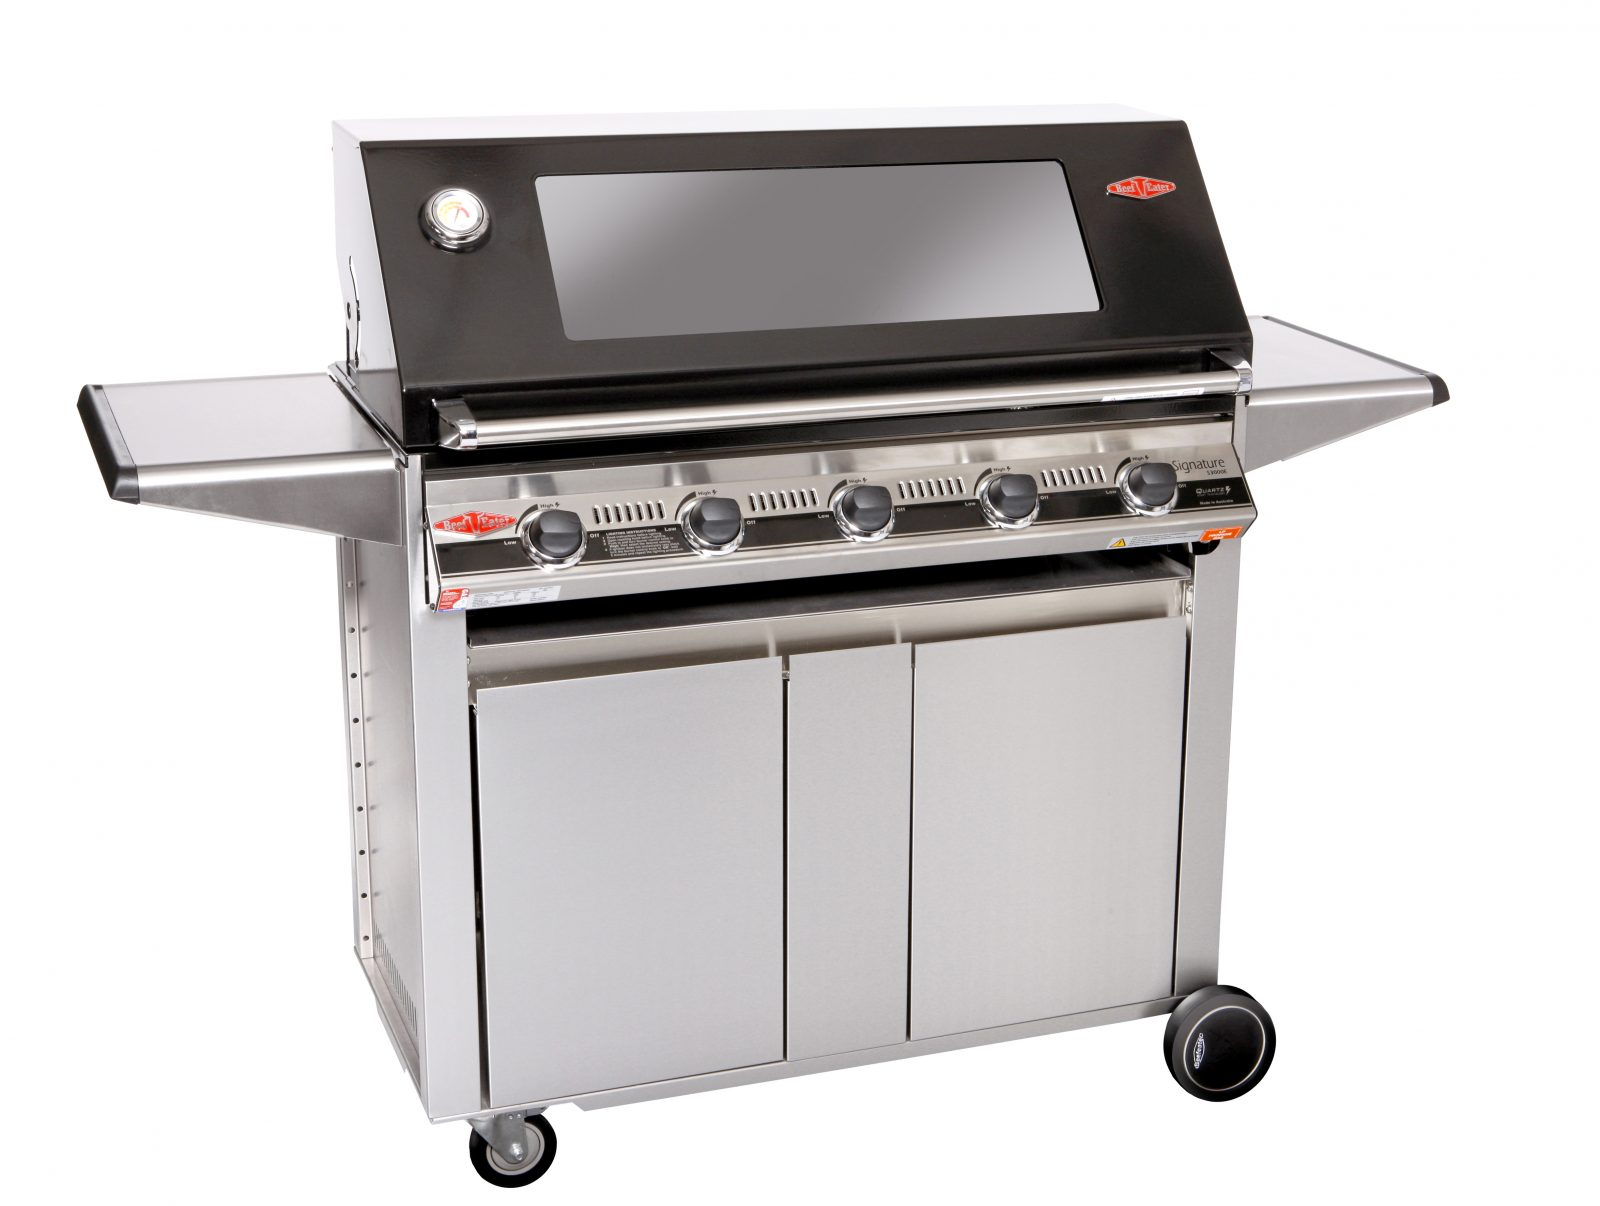 Gas Barbecue Signature 5 Burner 19252 Stainless Steel Grill 1 | Avant Garden